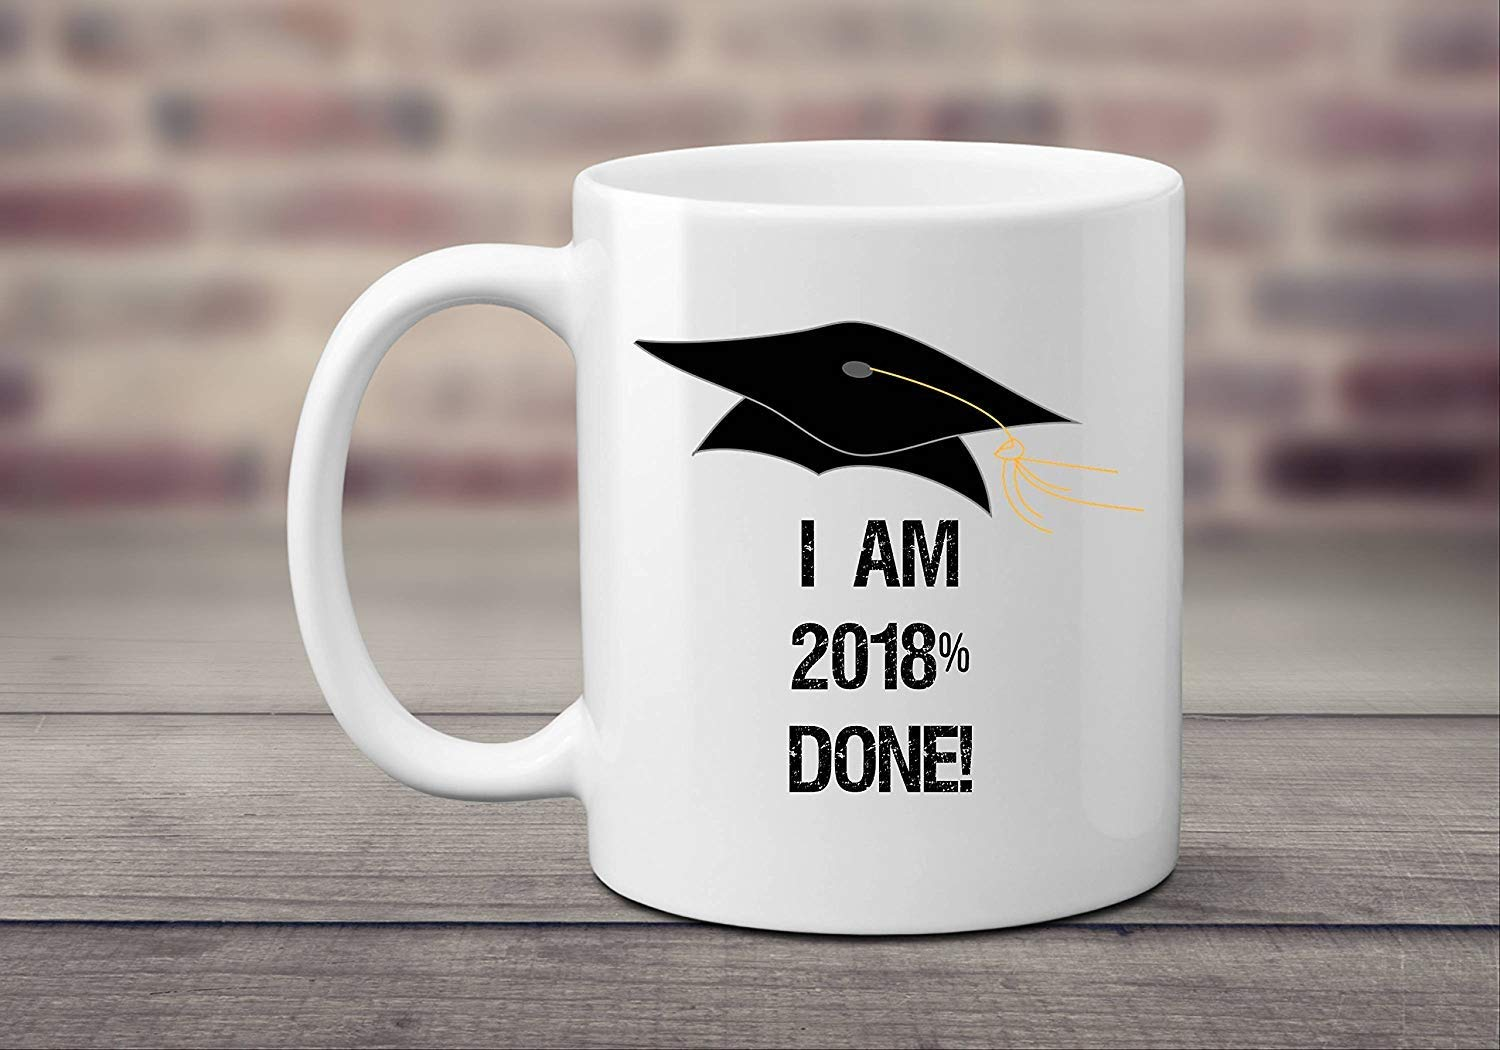 5 Graduation Gift Wine Labels or Stickers For Men or Women PHD Cute Unique Party Decoration Supplies Ideas Best Present For Adult College University Nurse RN Navy Army Doctorate Graduate Masters